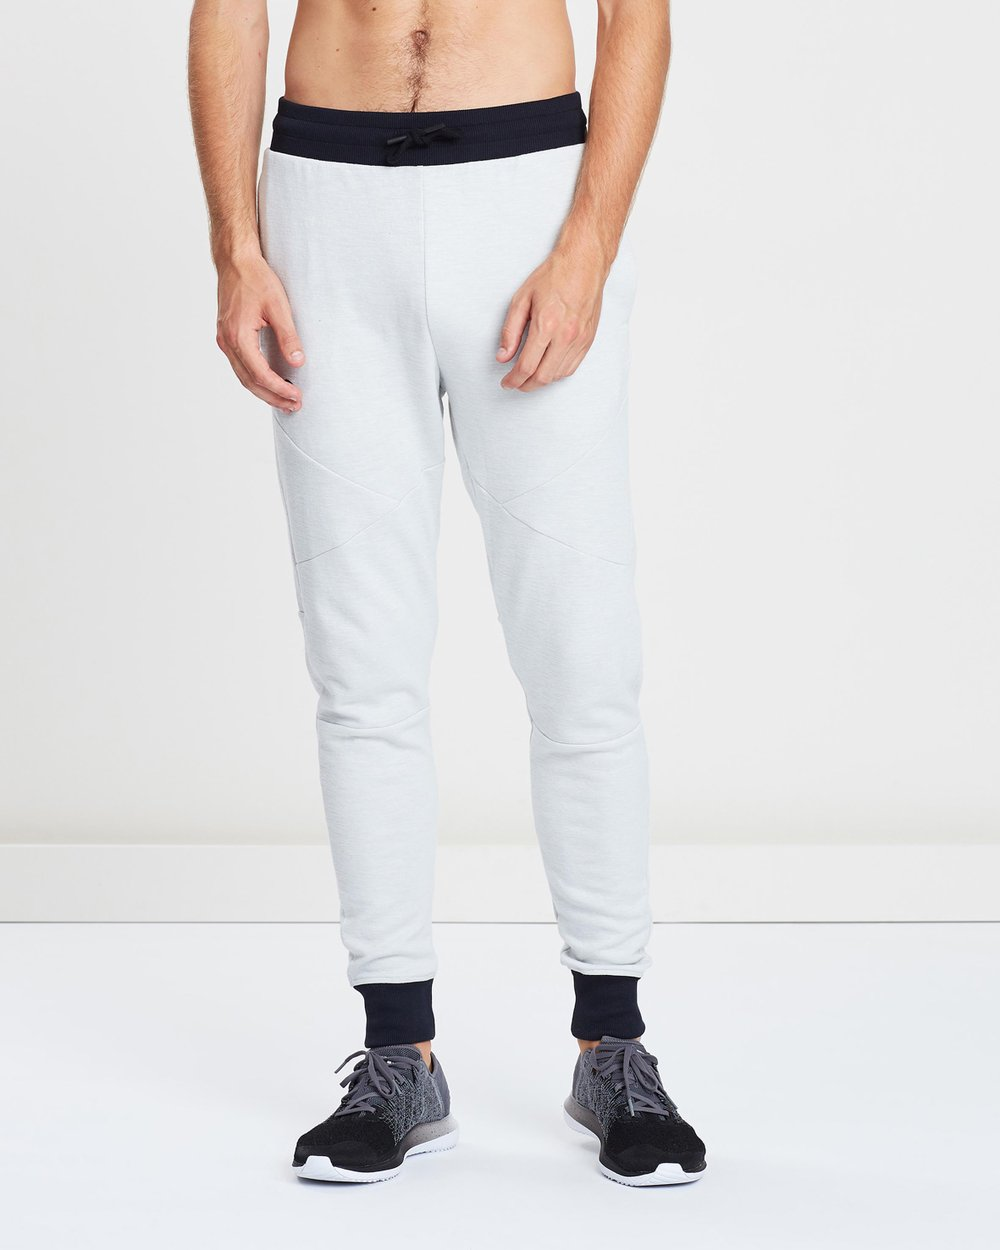 312c584051 Unstoppable 2X Knit Jogger Pants by Under Armour Online | THE ICONIC |  Australia